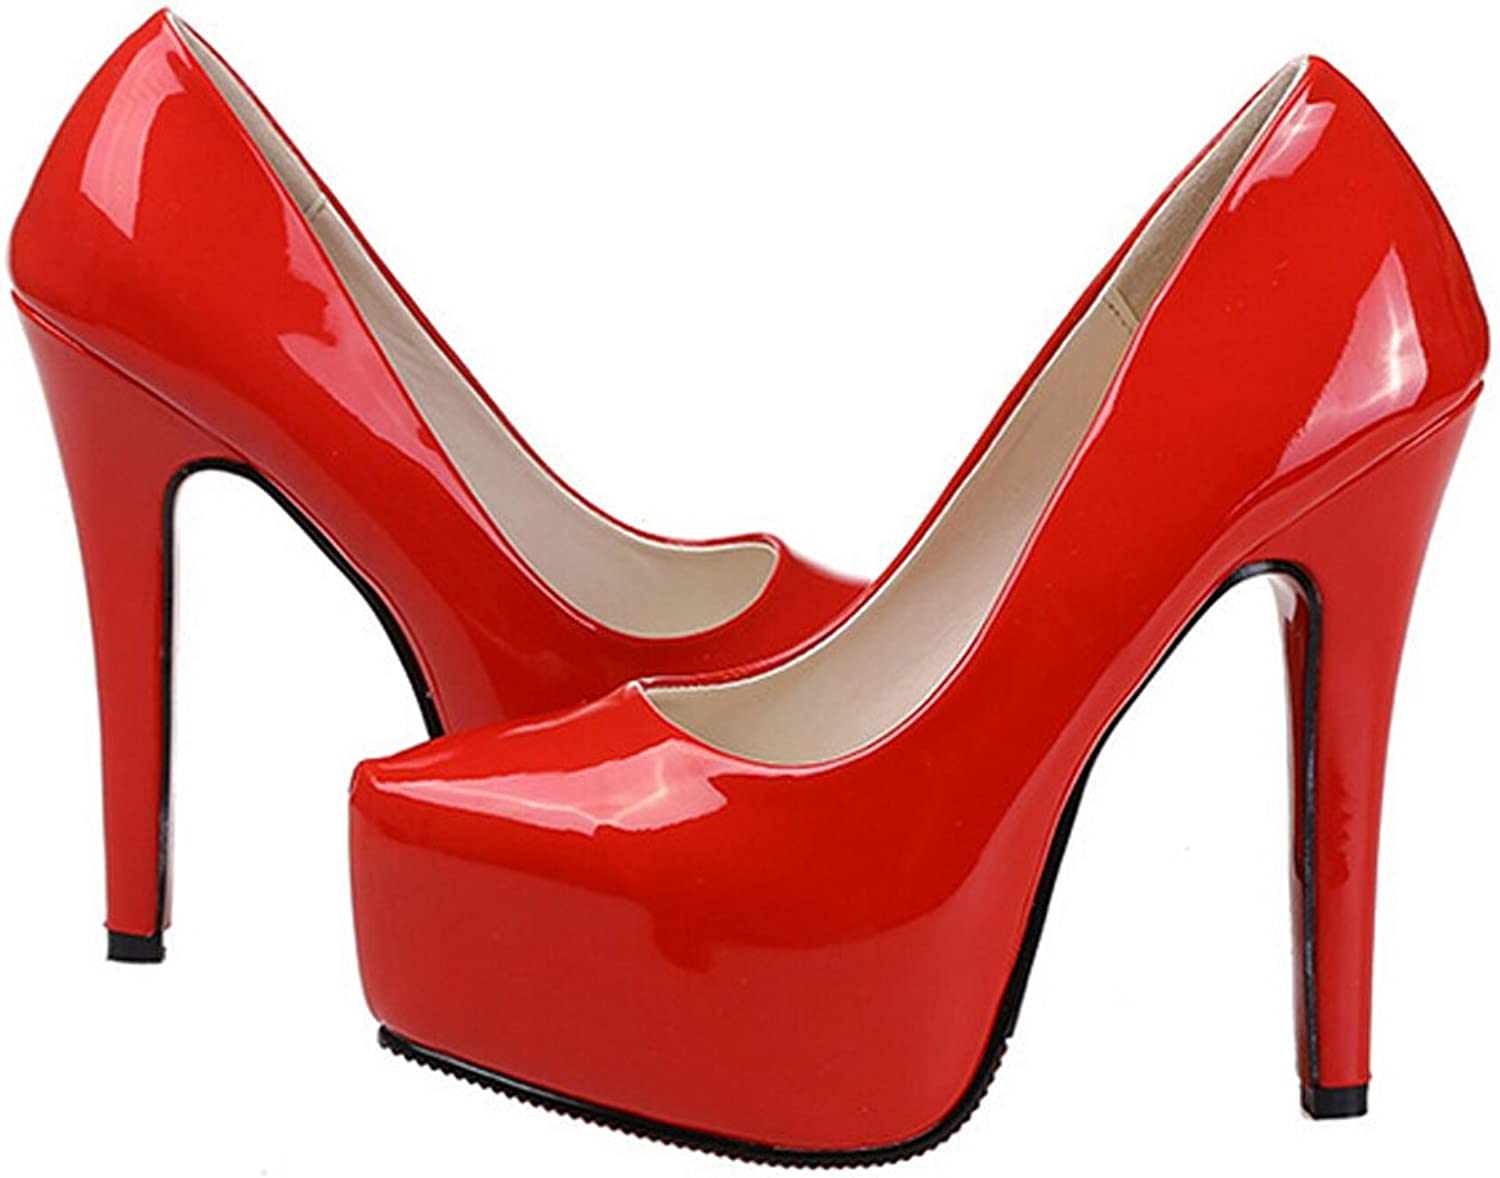 San hojas Leather Pumps High Heel Pumps for Bridel Wedding shoes Red